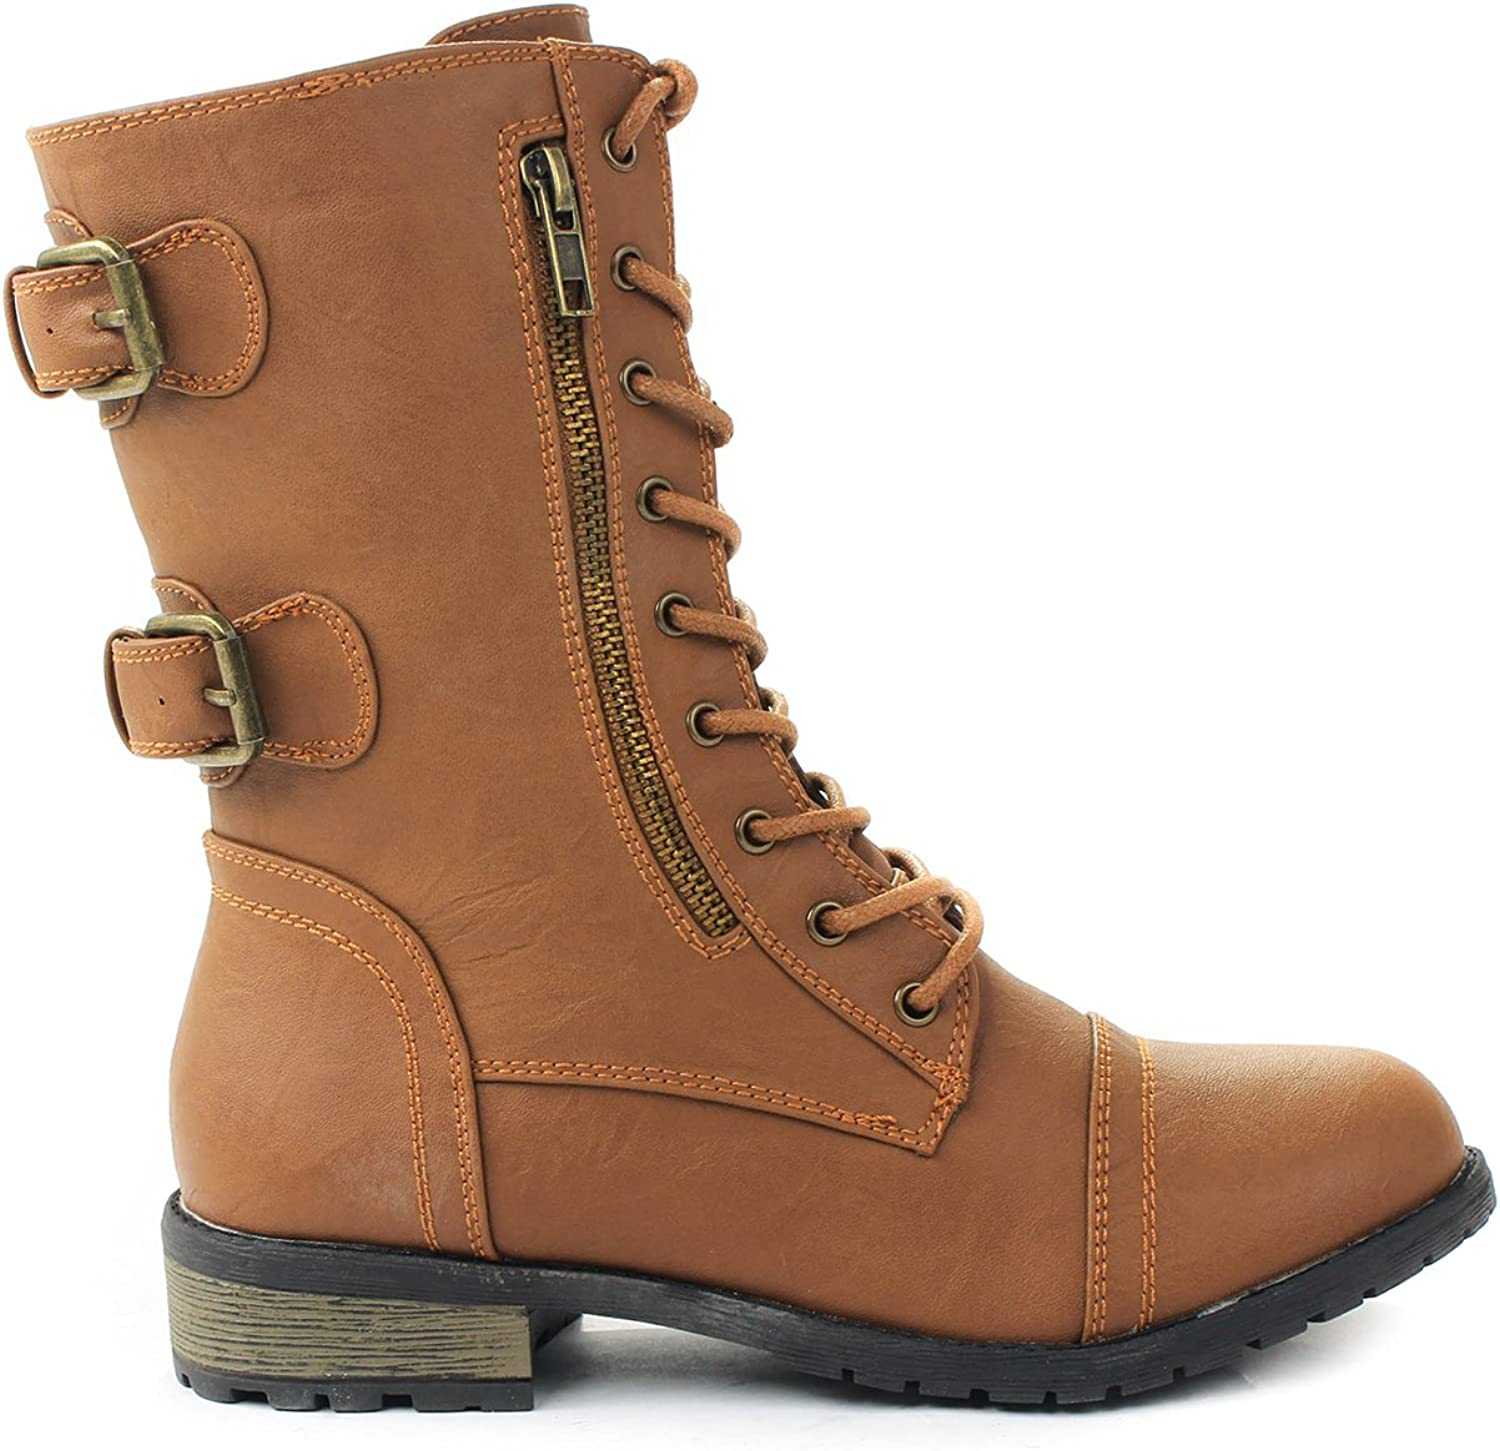 JJF shoes Mango-61 Women Tan Combat Lace Up Zip Grommet Buckle Mid Calf Motorcycle Boots-10